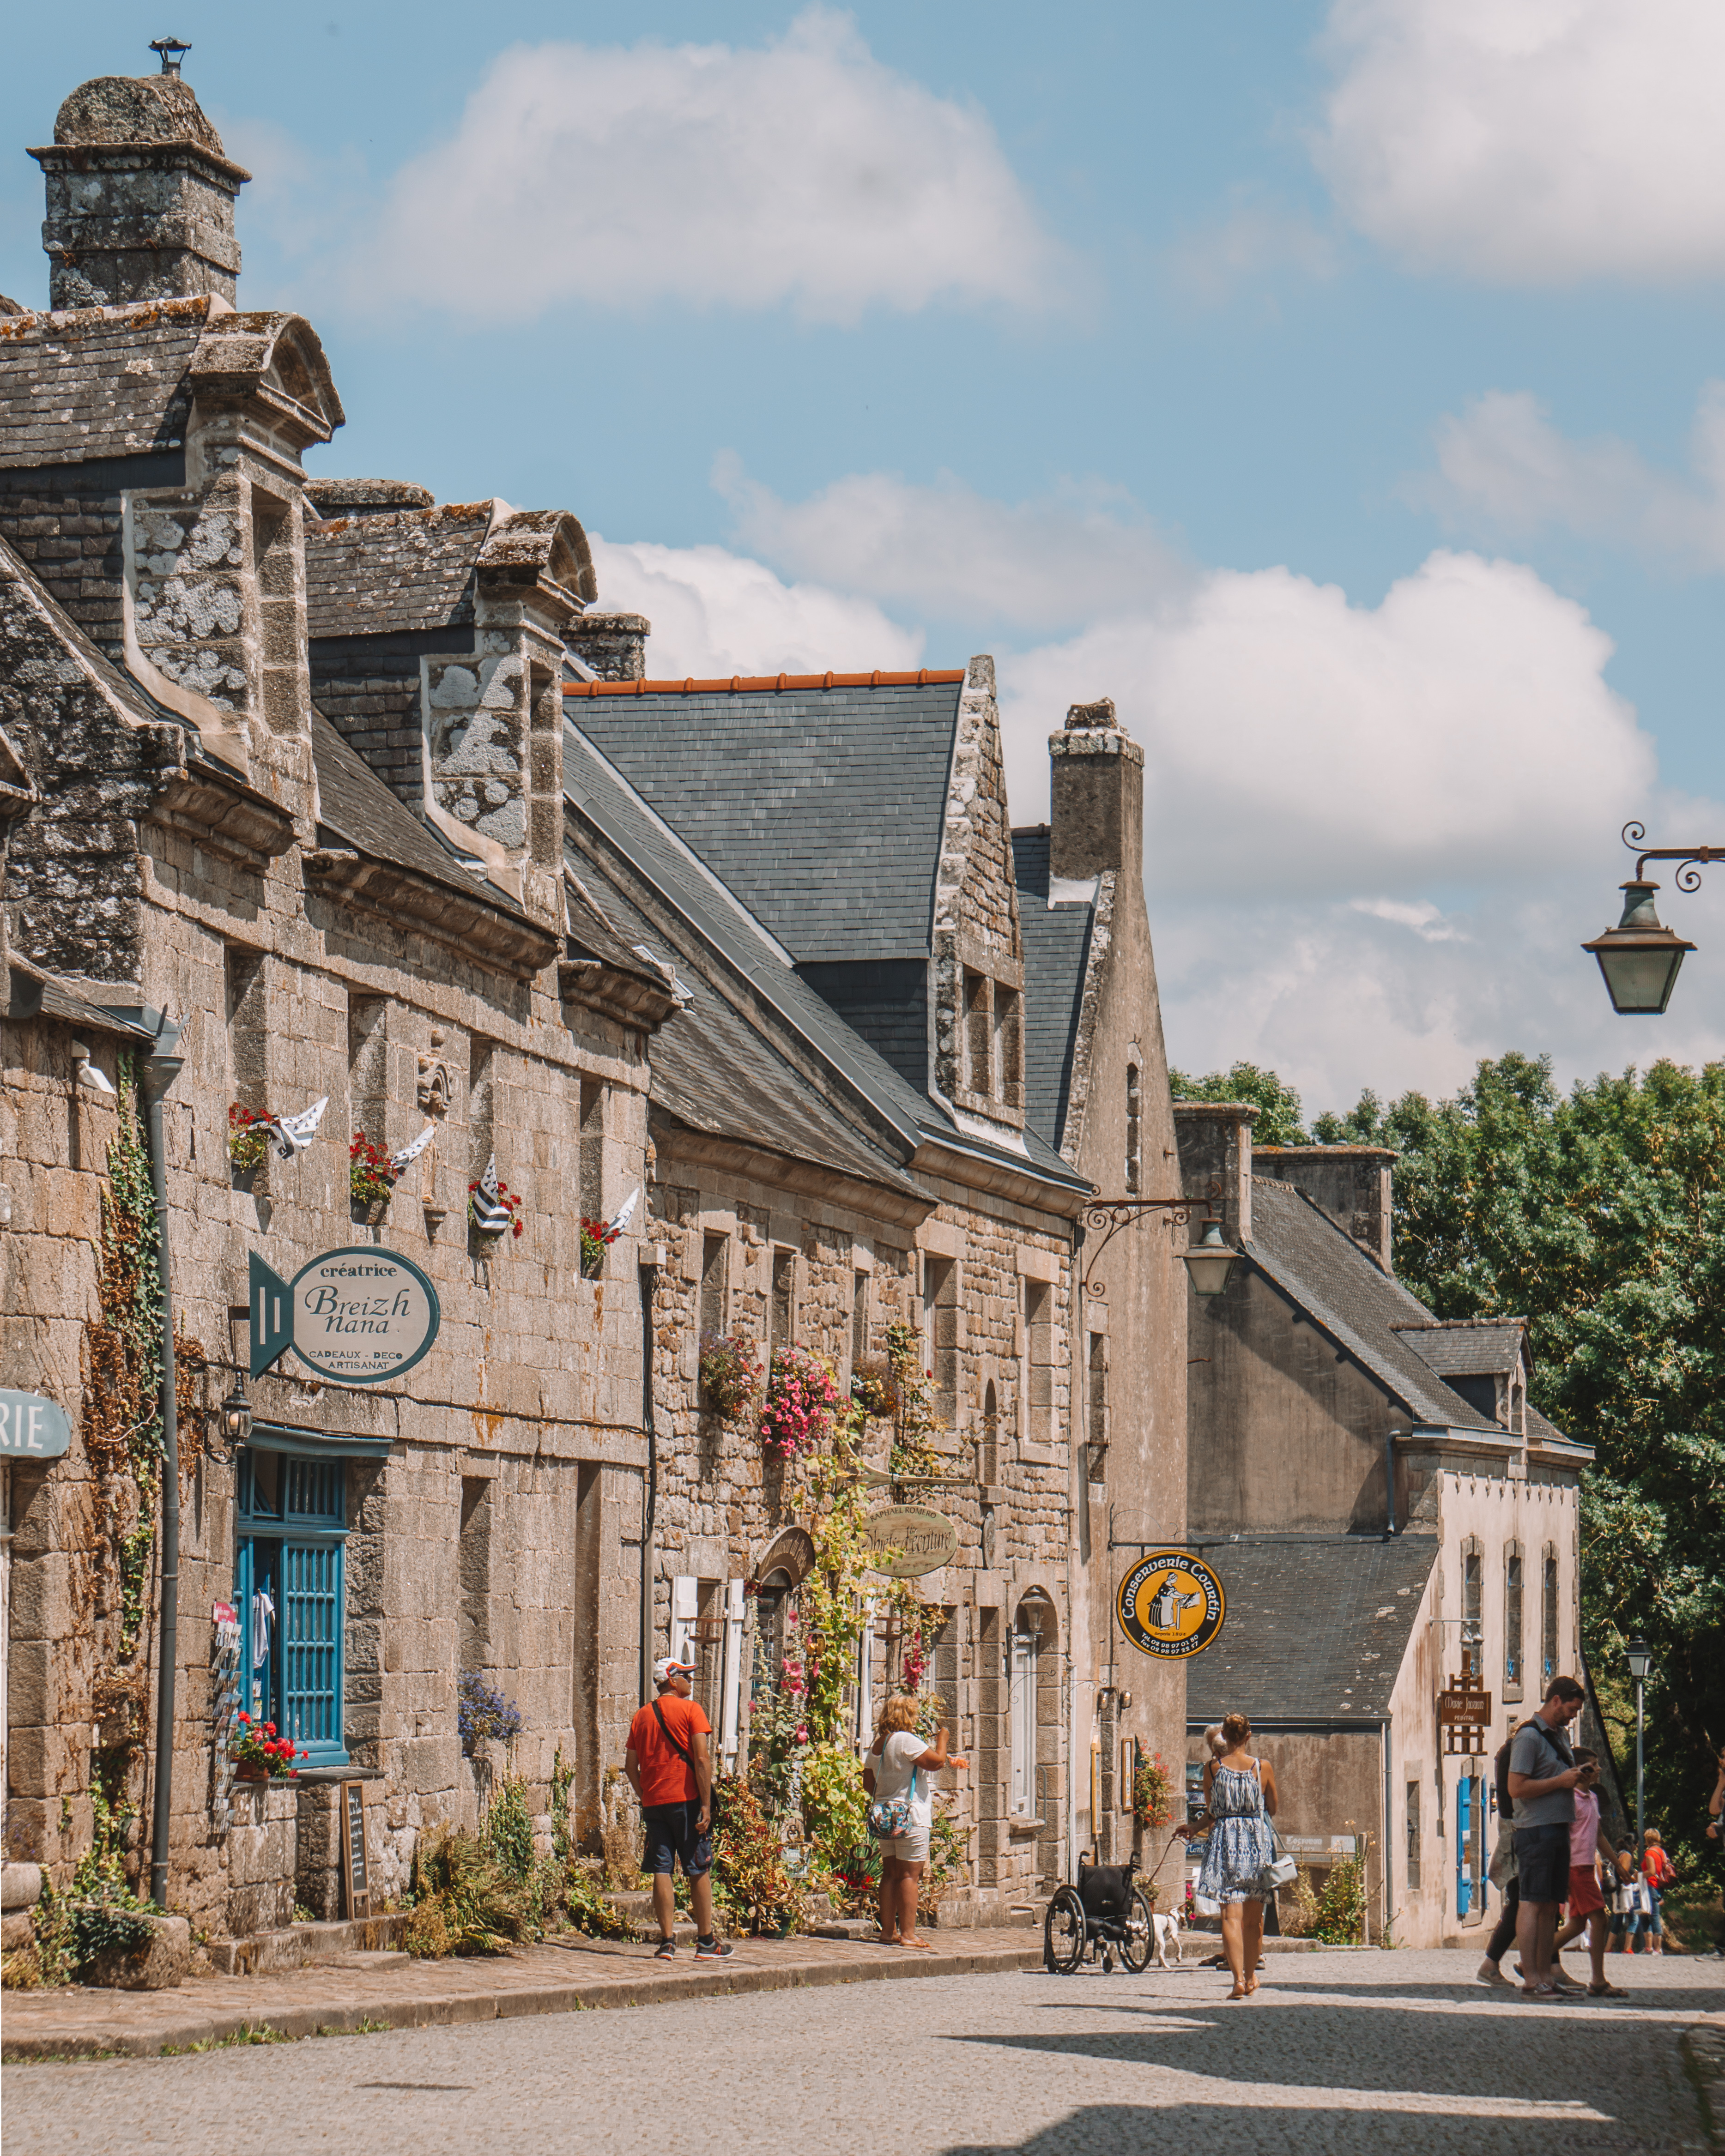 The beautiful Breton town of Locronan, France